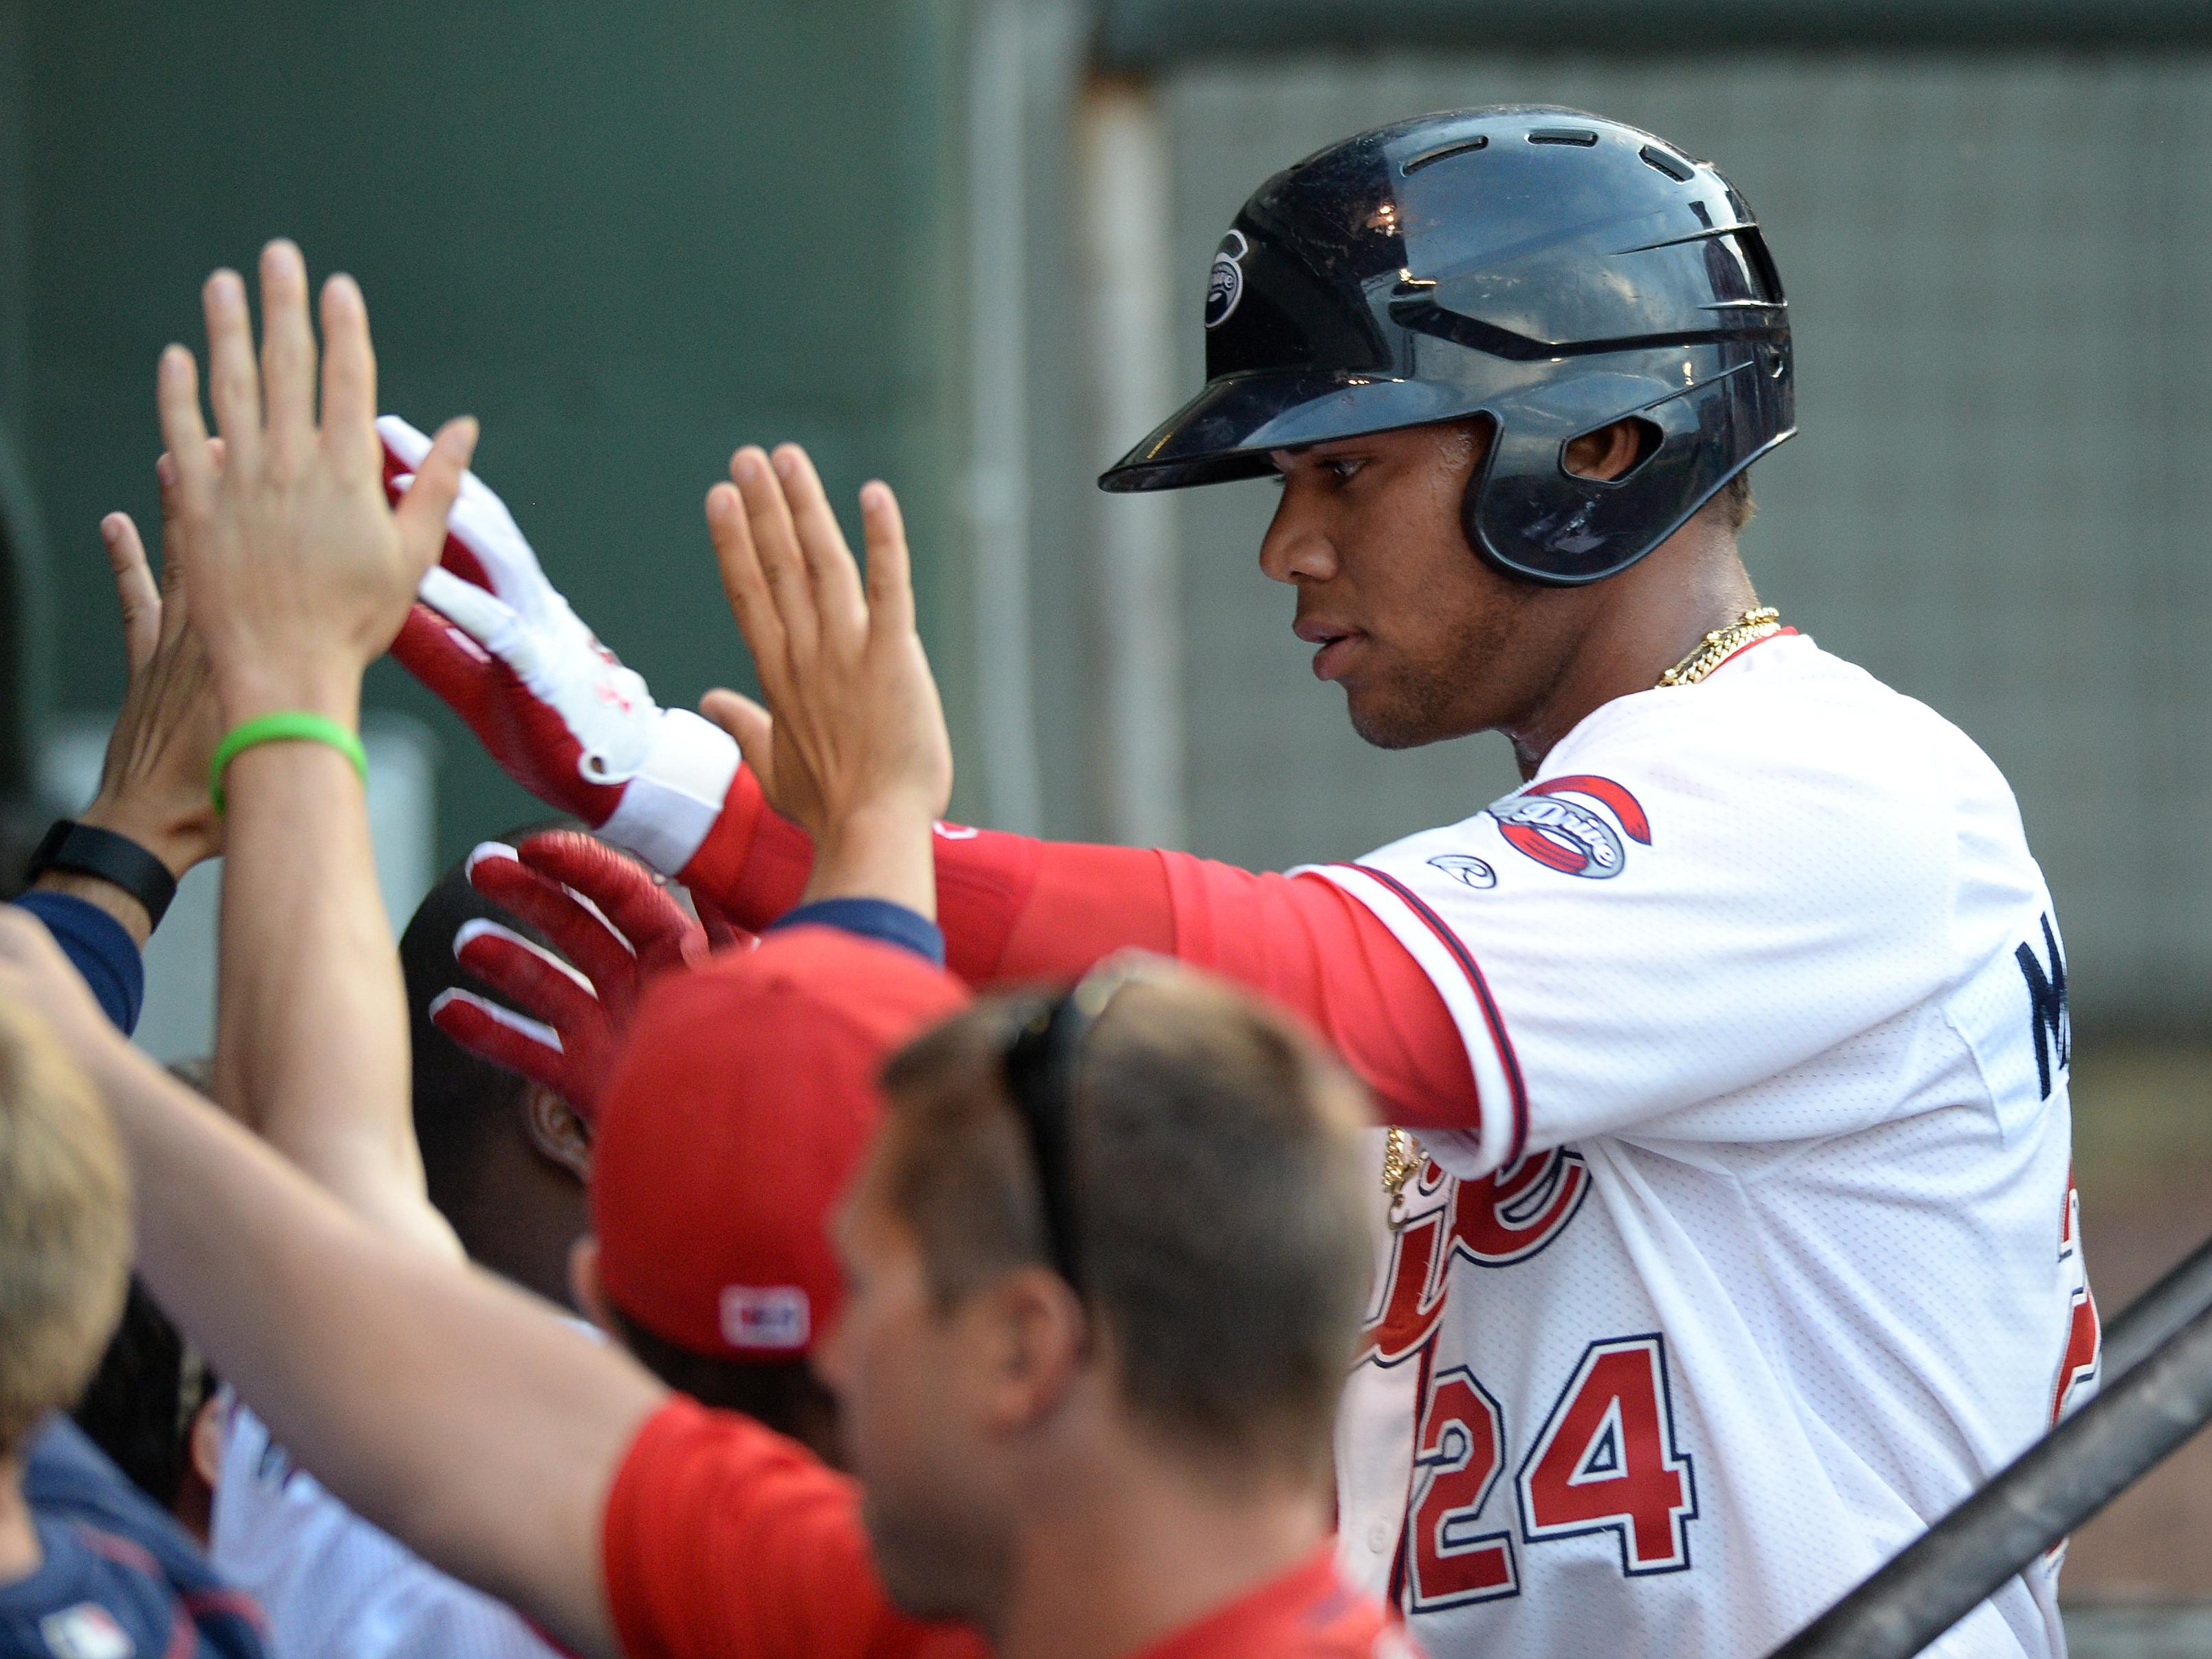 Yoan Moncada (24) hit a leadoff home run Wednesday to start the Greenville Drive's 7-0 win against Greensboro.